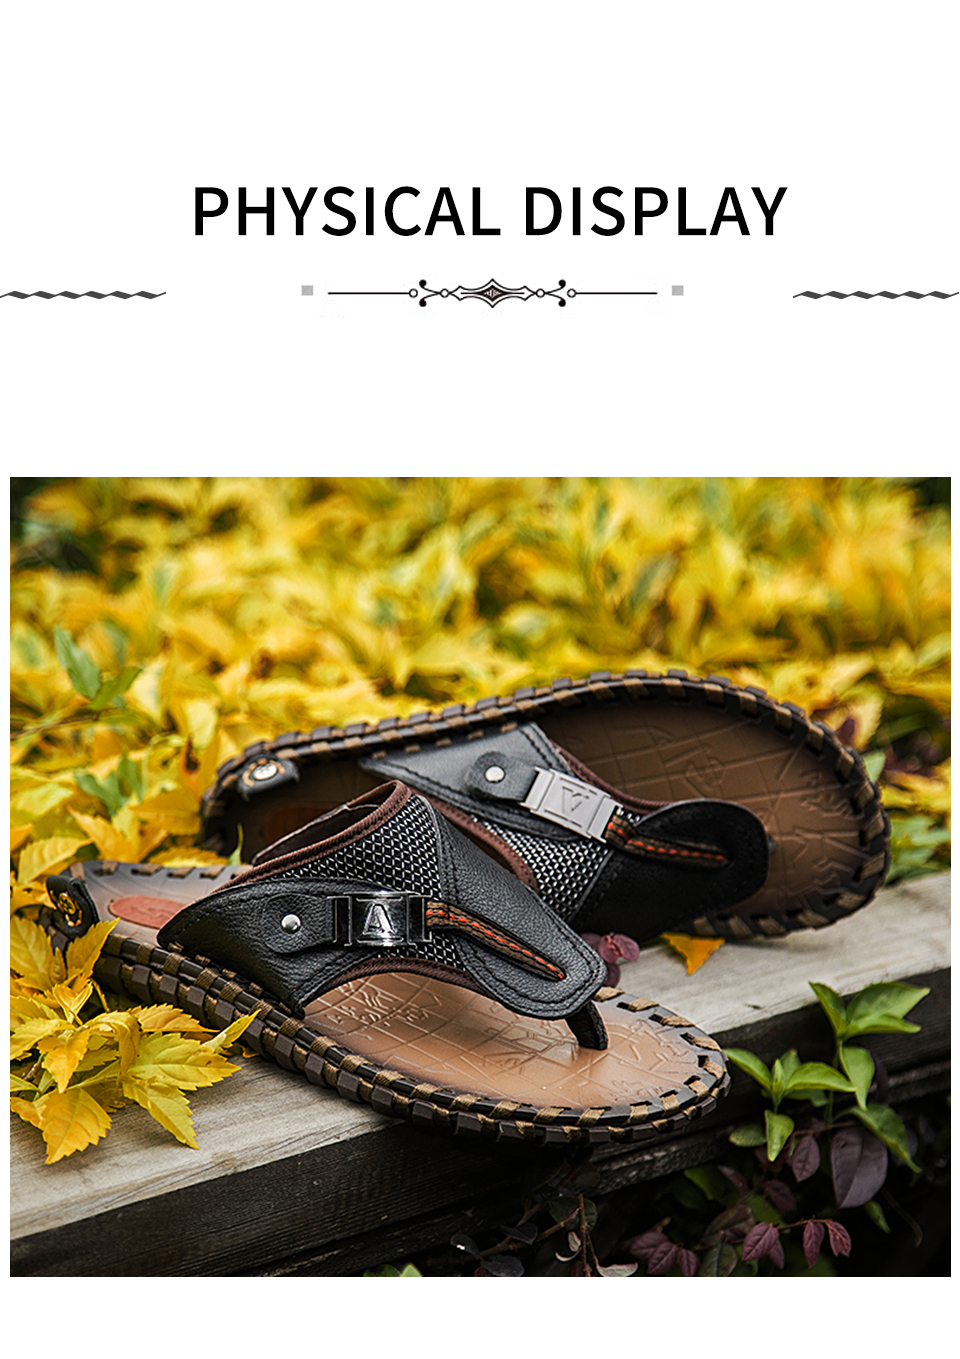 HTB1sfI.LMHqK1RjSZFPq6AwapXa8 - VRYHEID Brand Men's Flip Flops Genuine Leather Luxury Slippers Beach Casual Sandals Summer for Men Fashion Shoes New Big Size 48